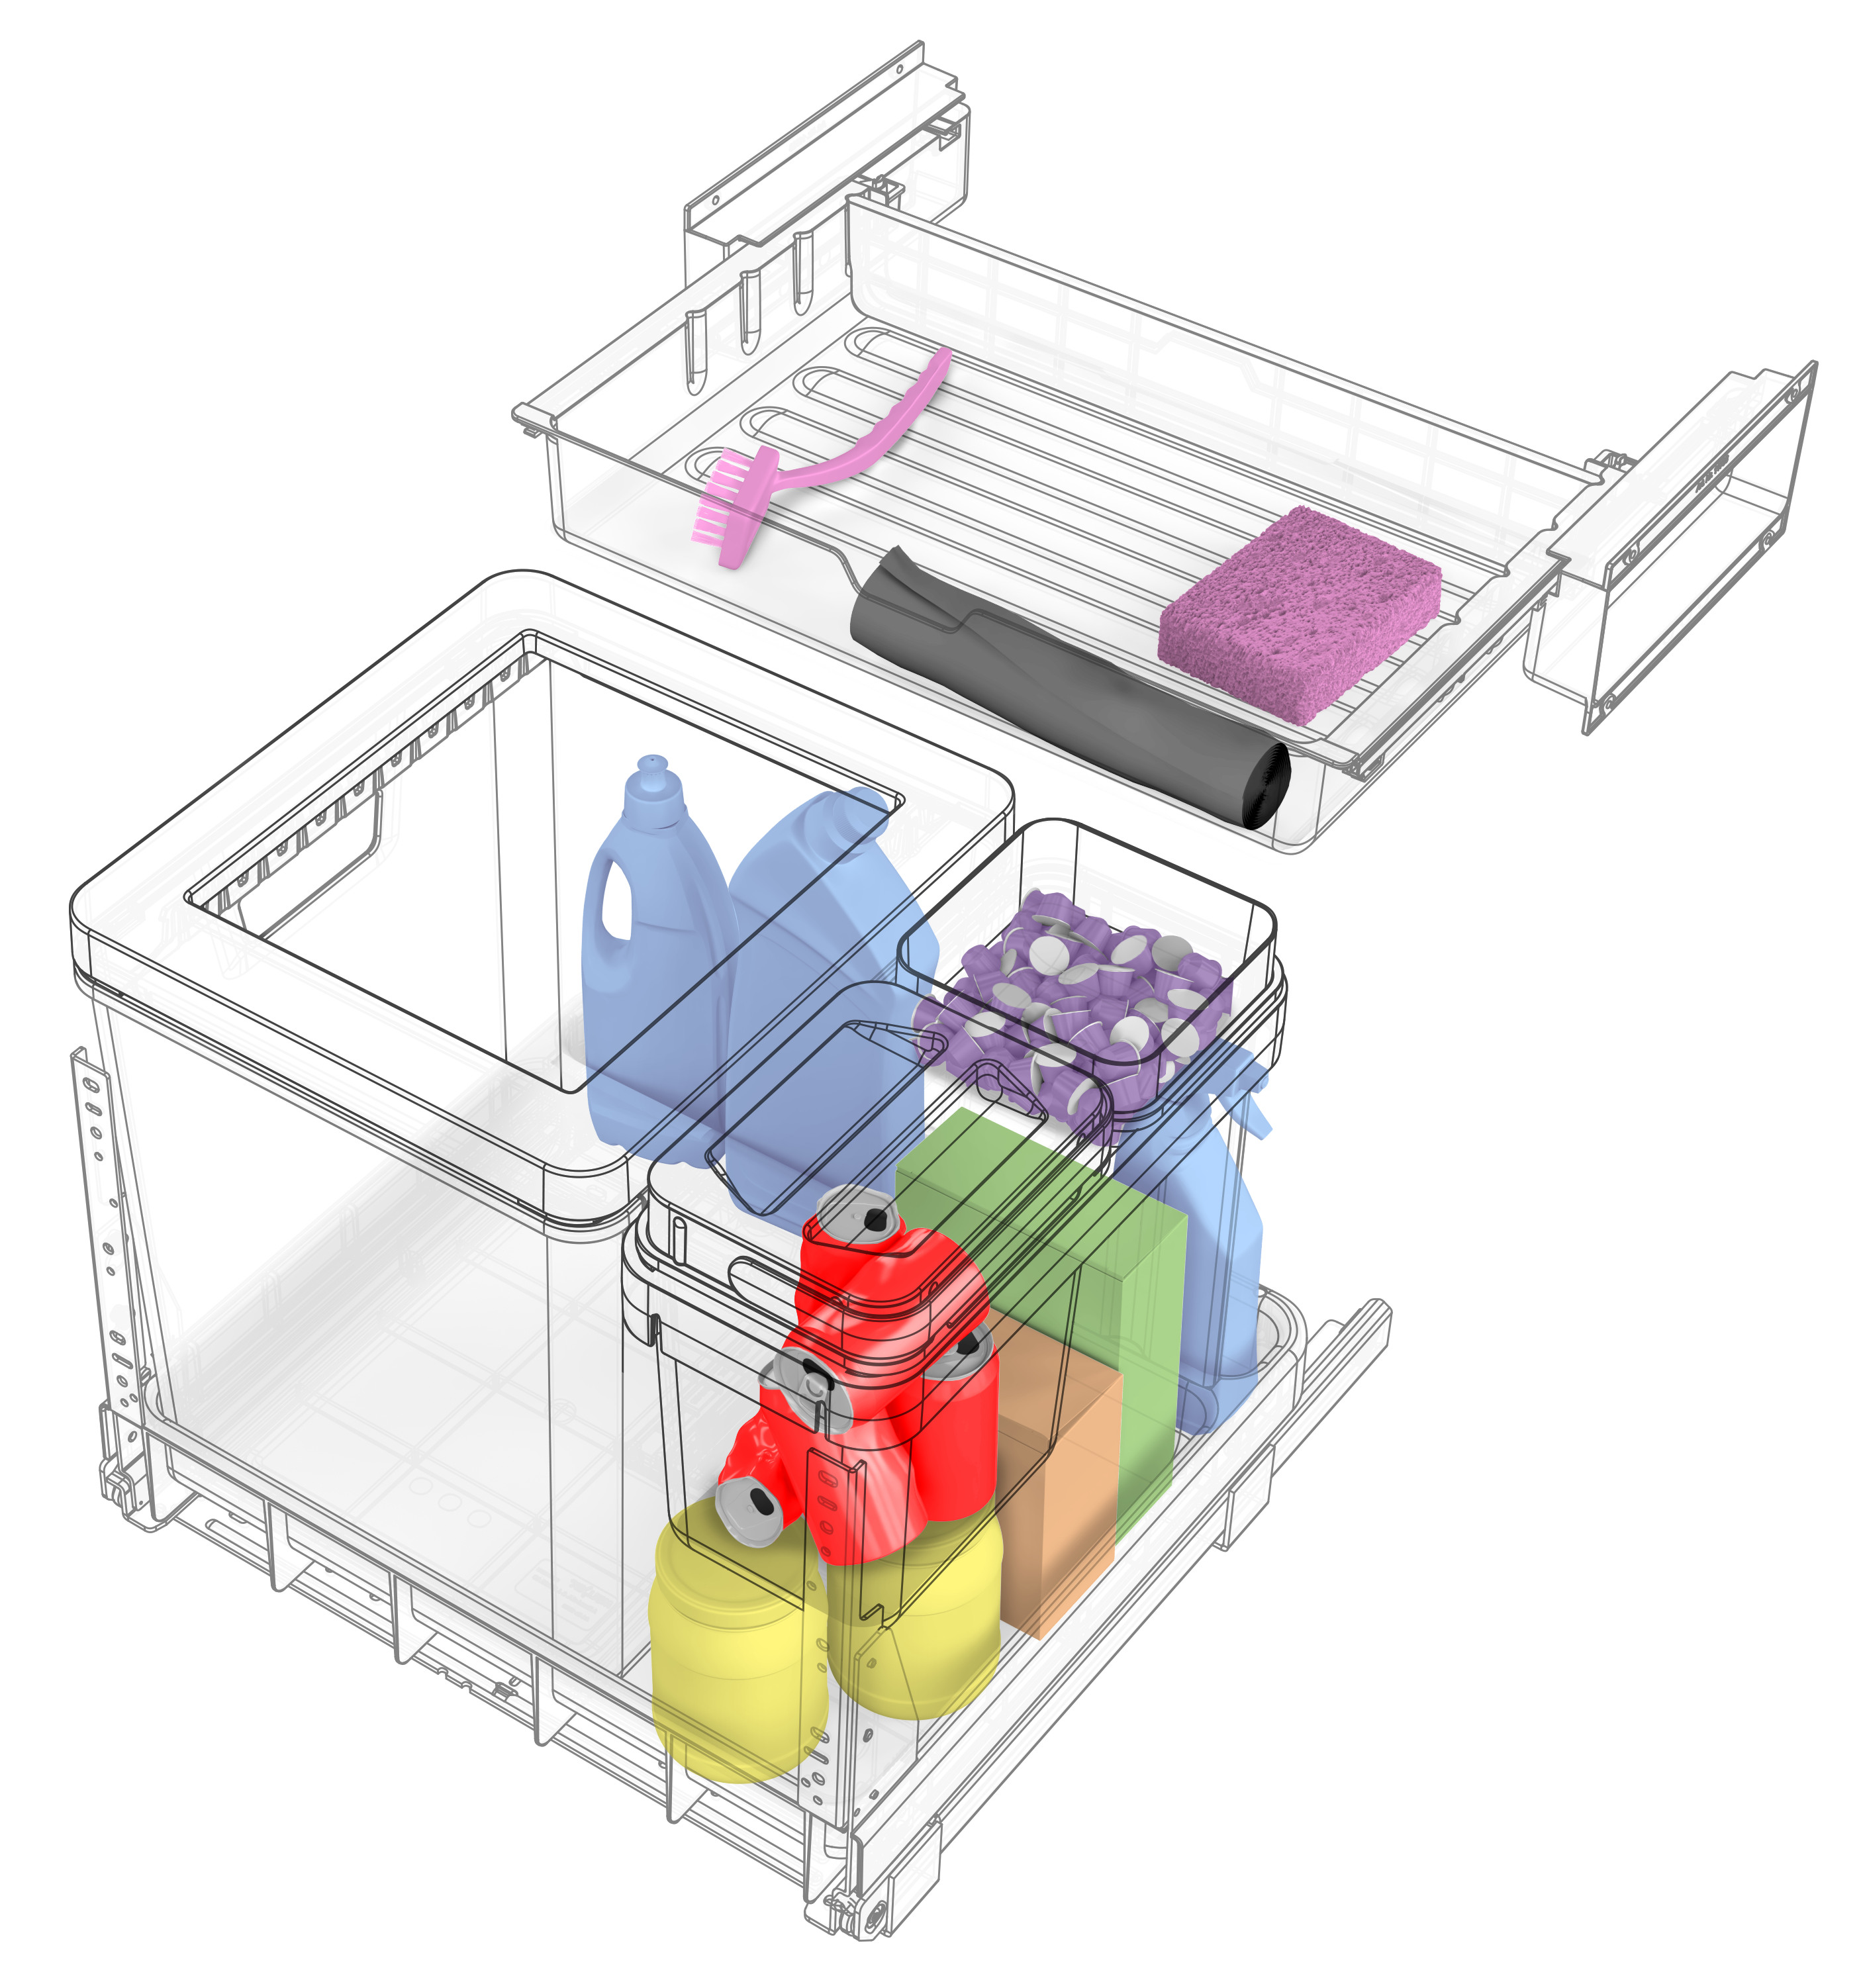 Clever waste separation systems for the kitchen offer more storage space.